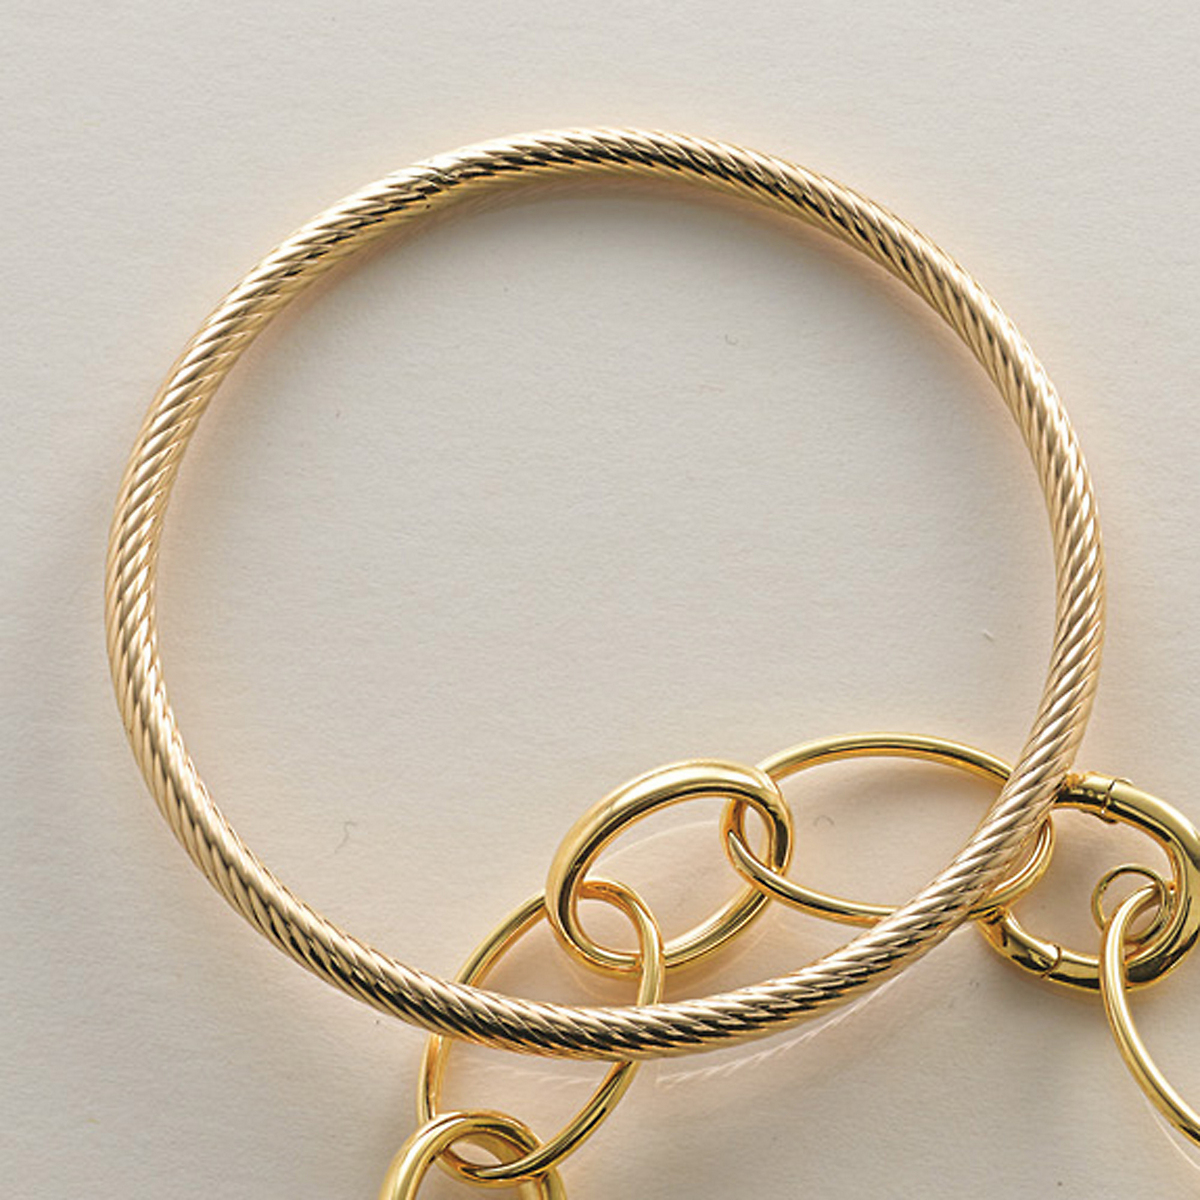 Swirl Slip-On Gold Bangle Bracelet